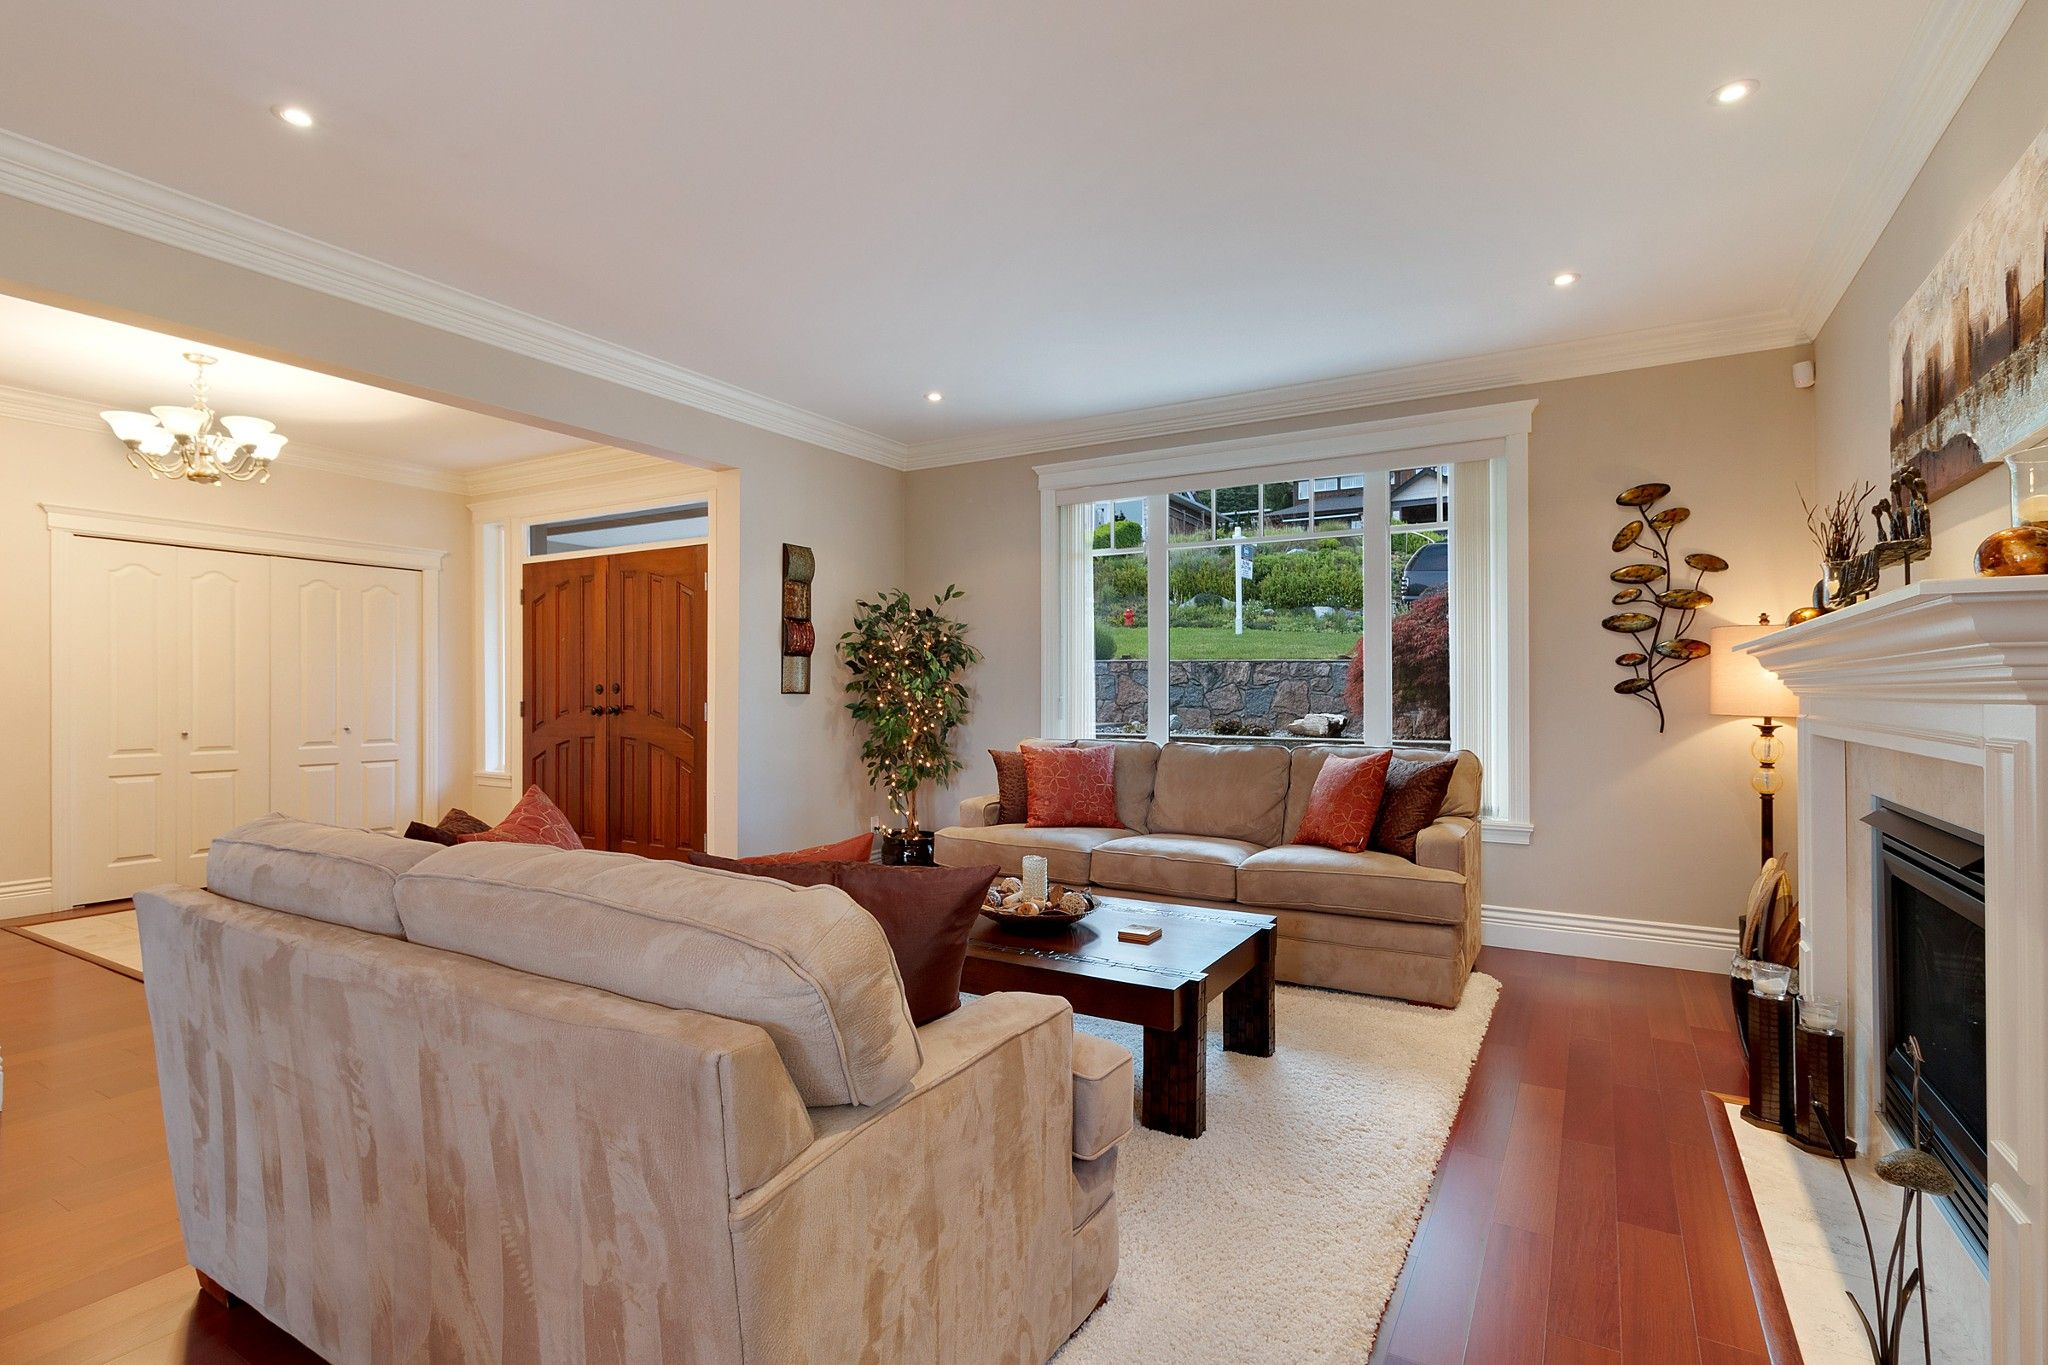 Photo 5: Photos: 1237 DYCK Road in North Vancouver: Lynn Valley House for sale : MLS®# R2374868